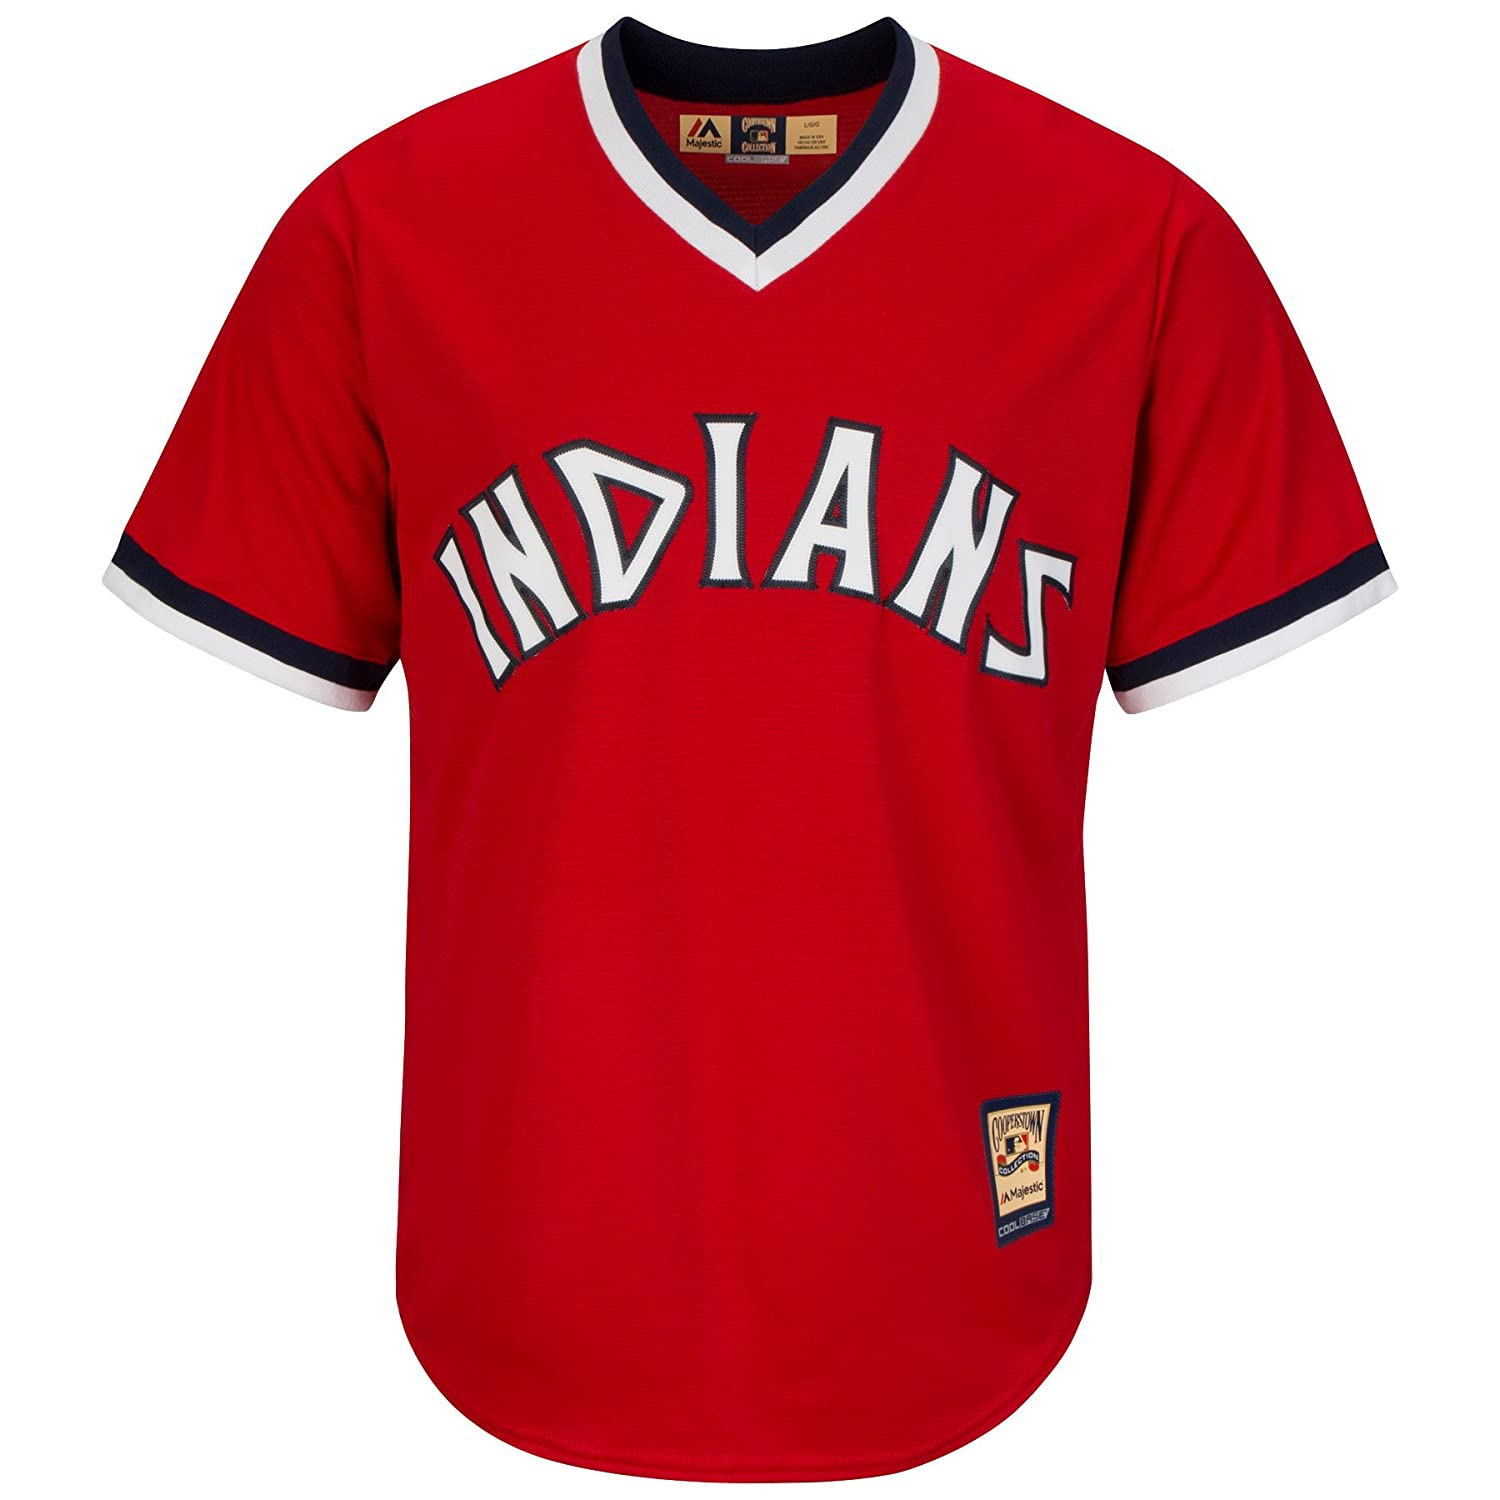 Cleveland Red Indians Cleveland Indians Jersey feaffbabaadac|New York Giants Season And Ticket Preview